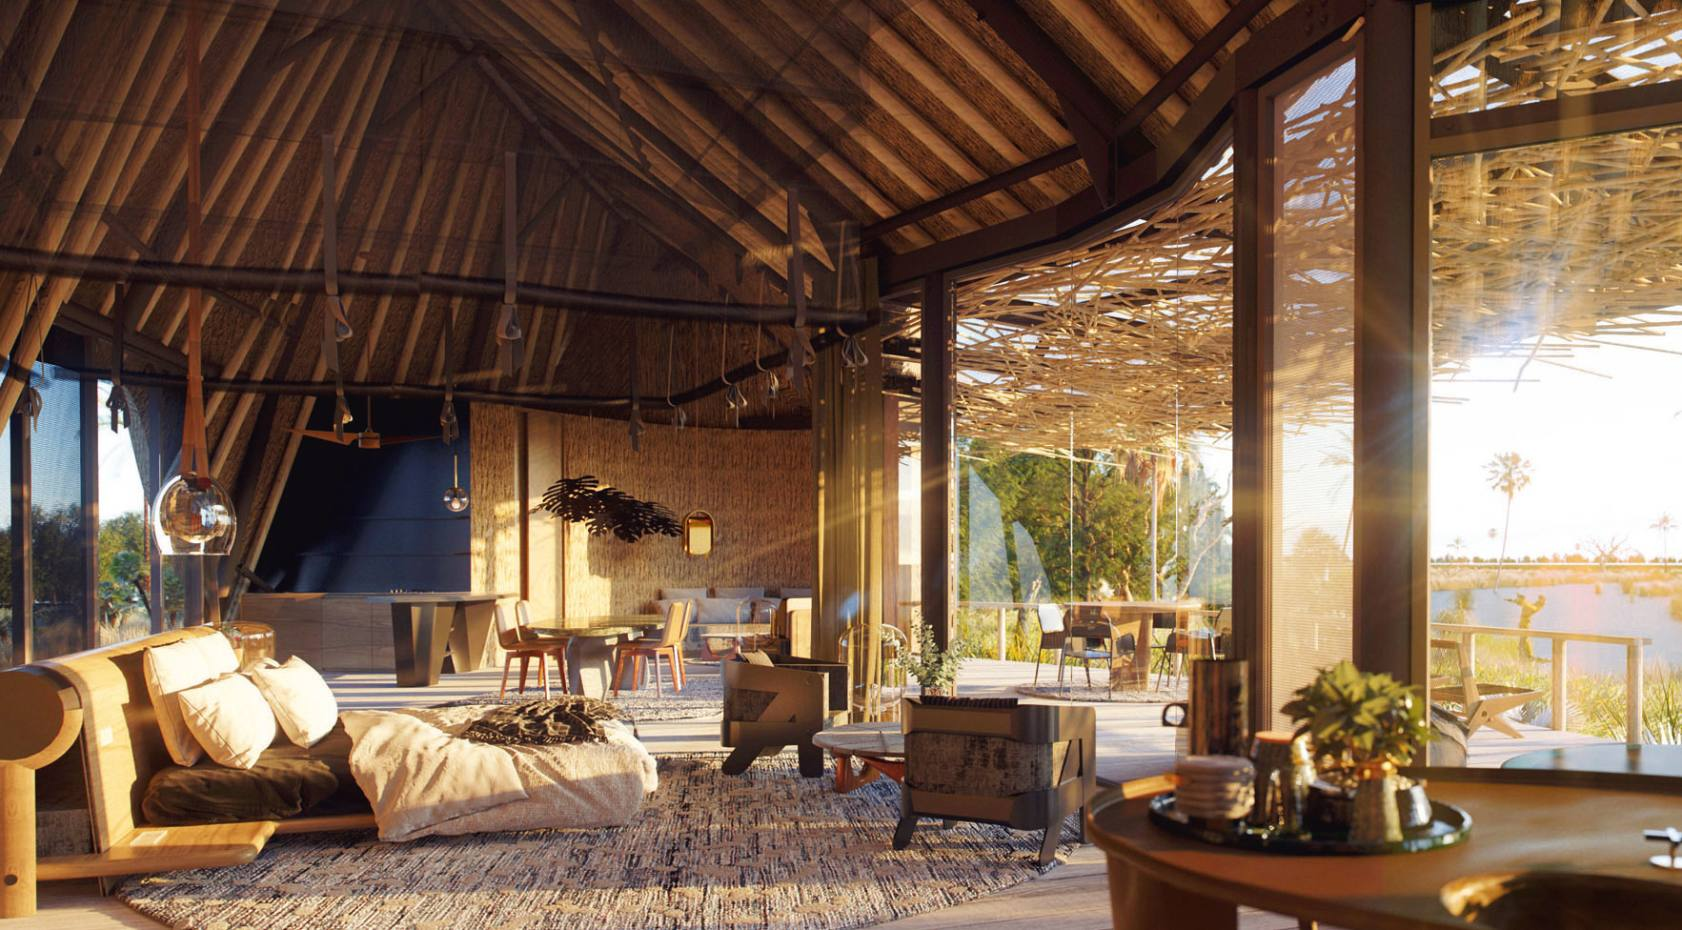 A living space in the redesigned Jao Camp, in Botswana